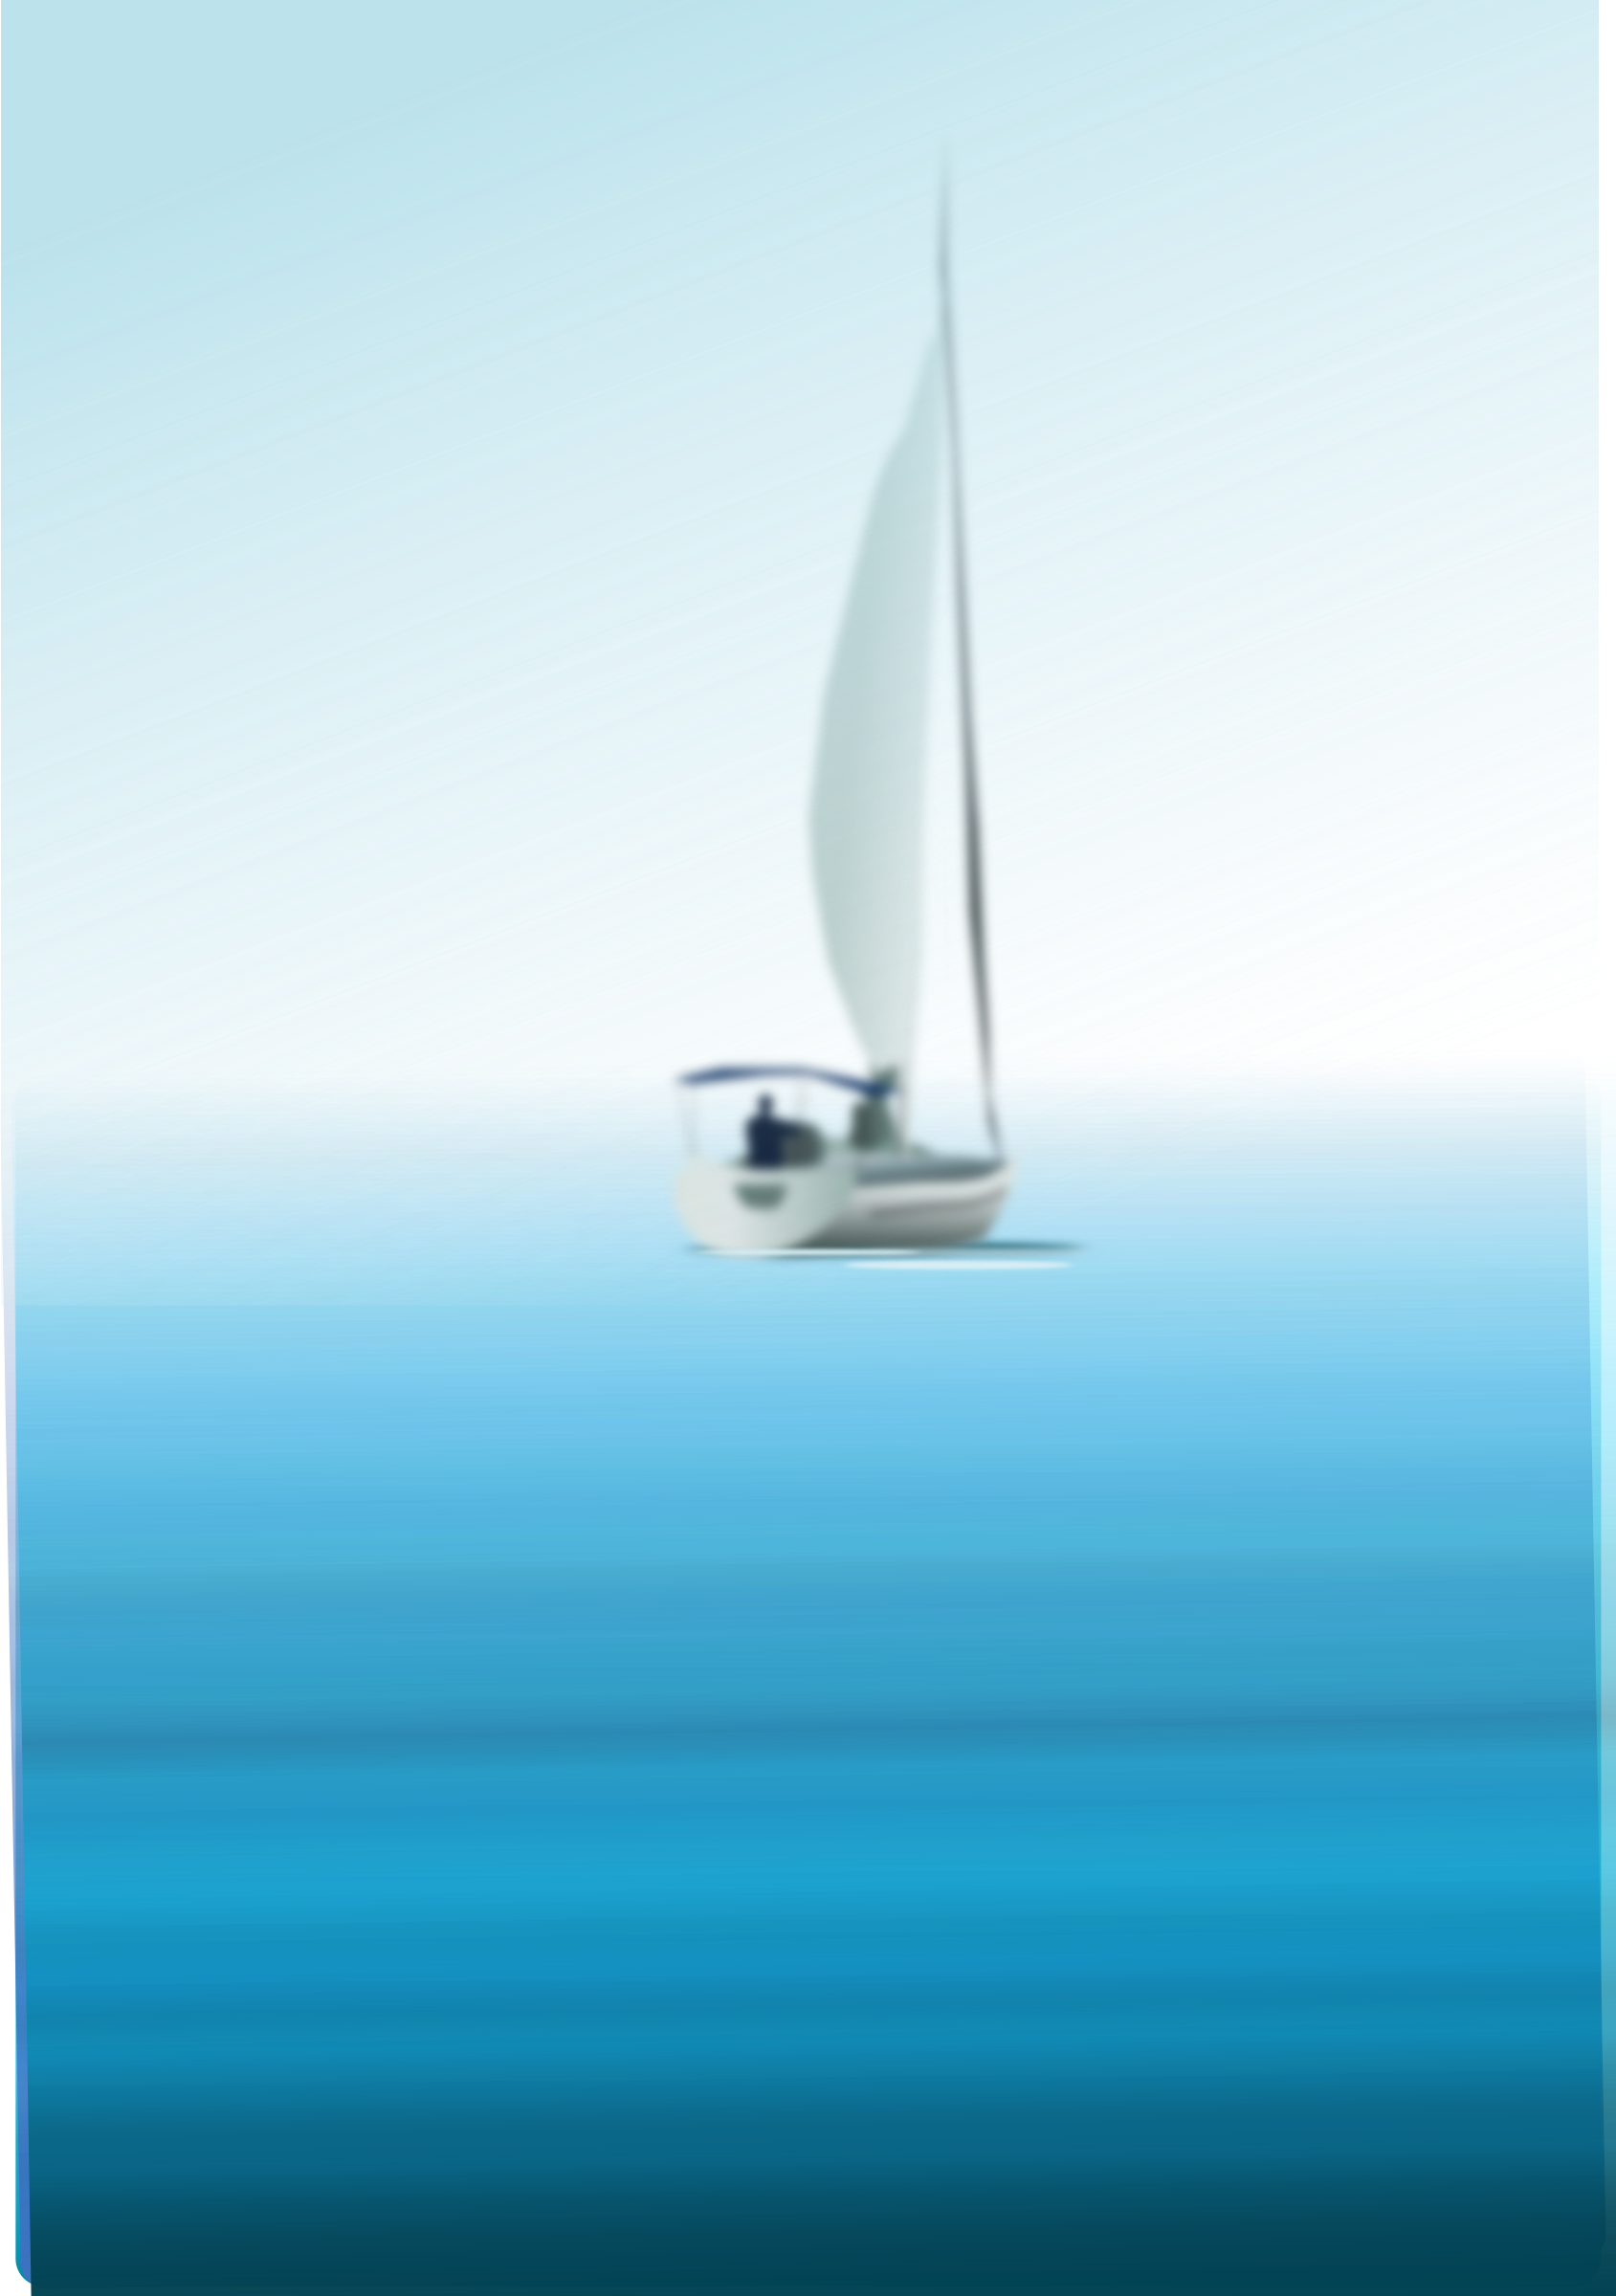 png freeuse Yacht clipart large boat. Sea sailboat explore pictures